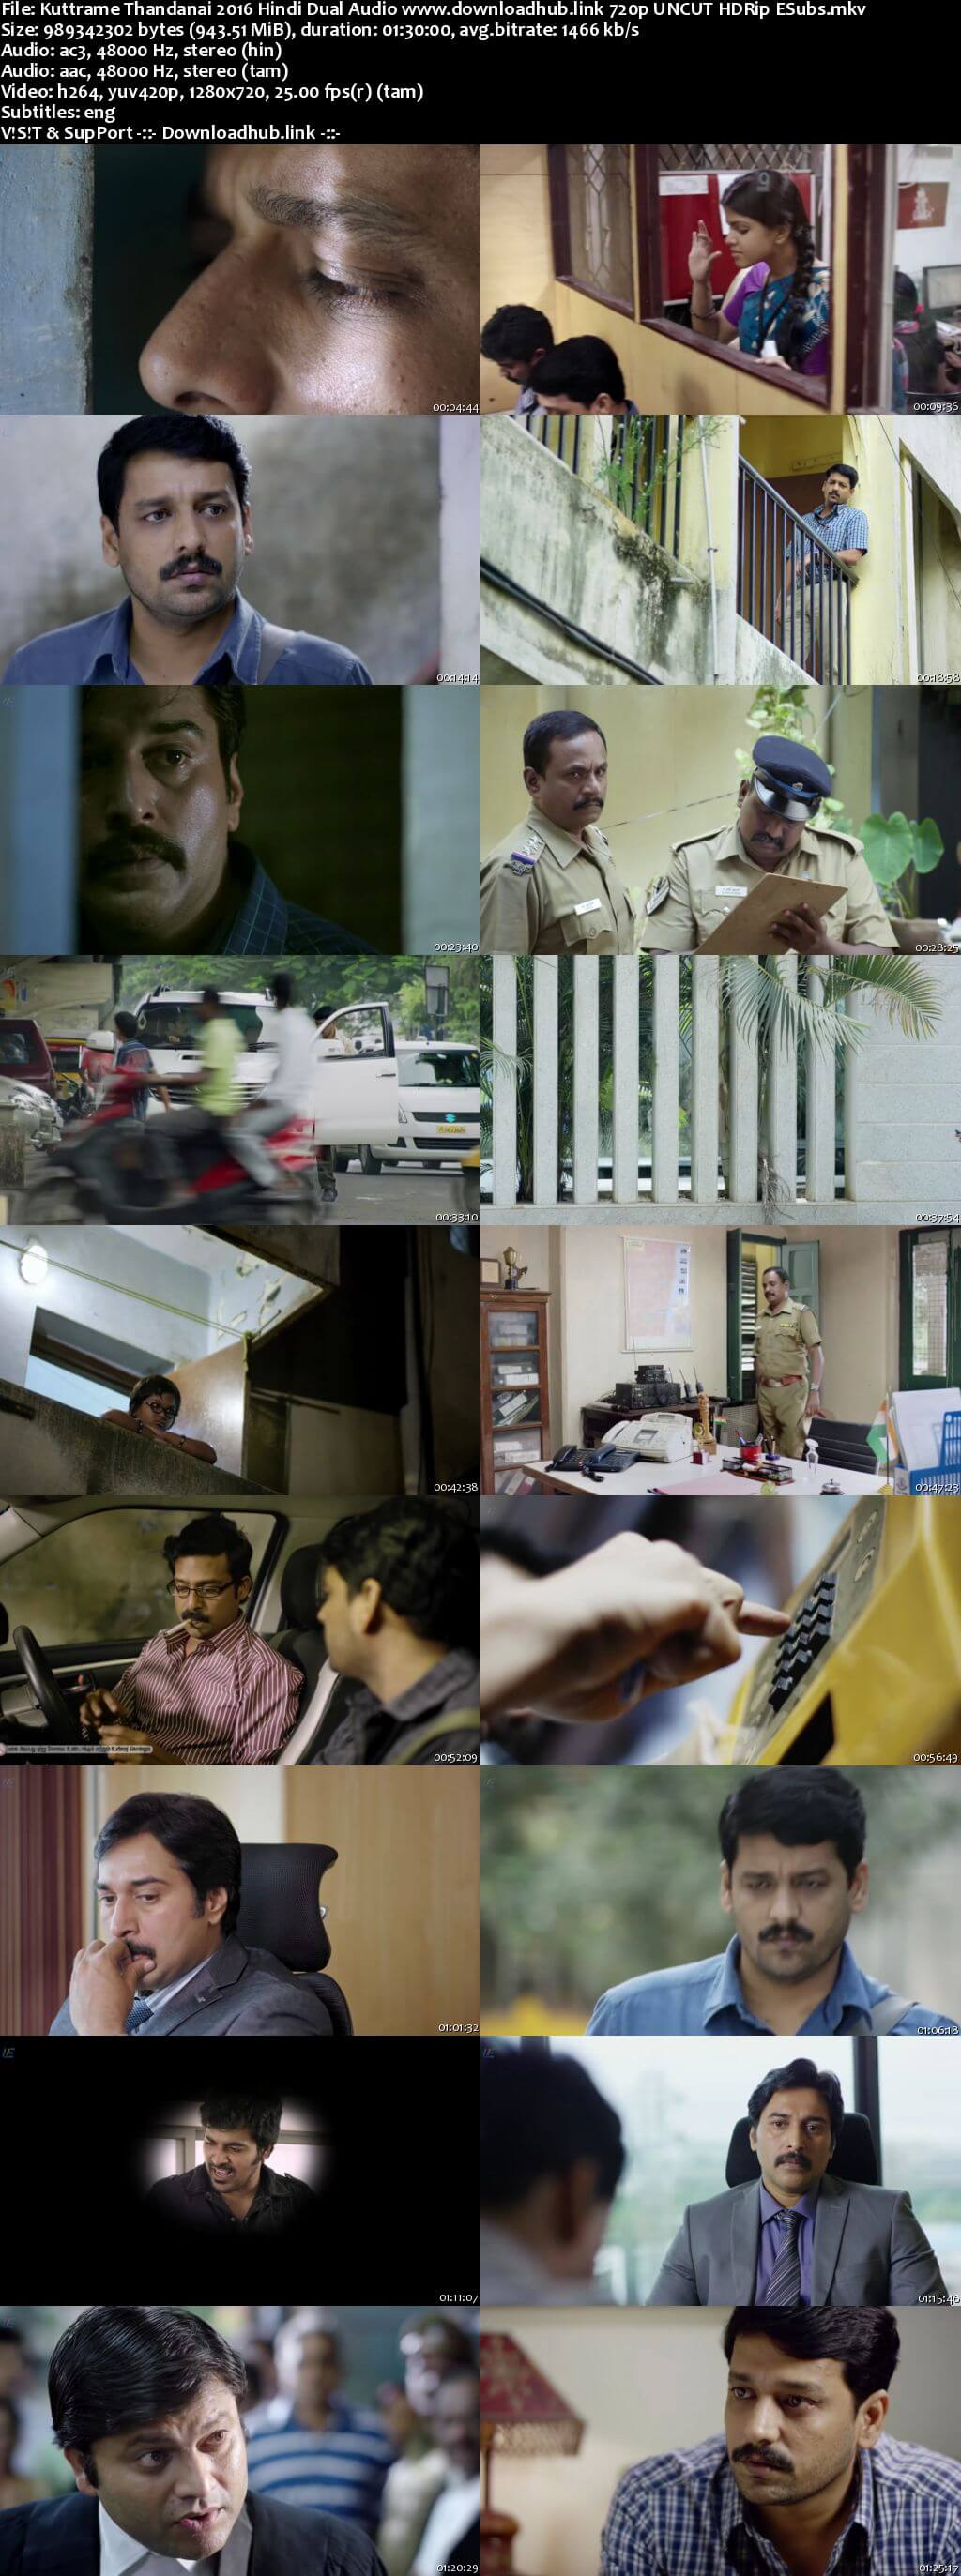 Kuttrame Thandanai 2016 Hindi Dual Audio 720p UNCUT HDRip ESubs